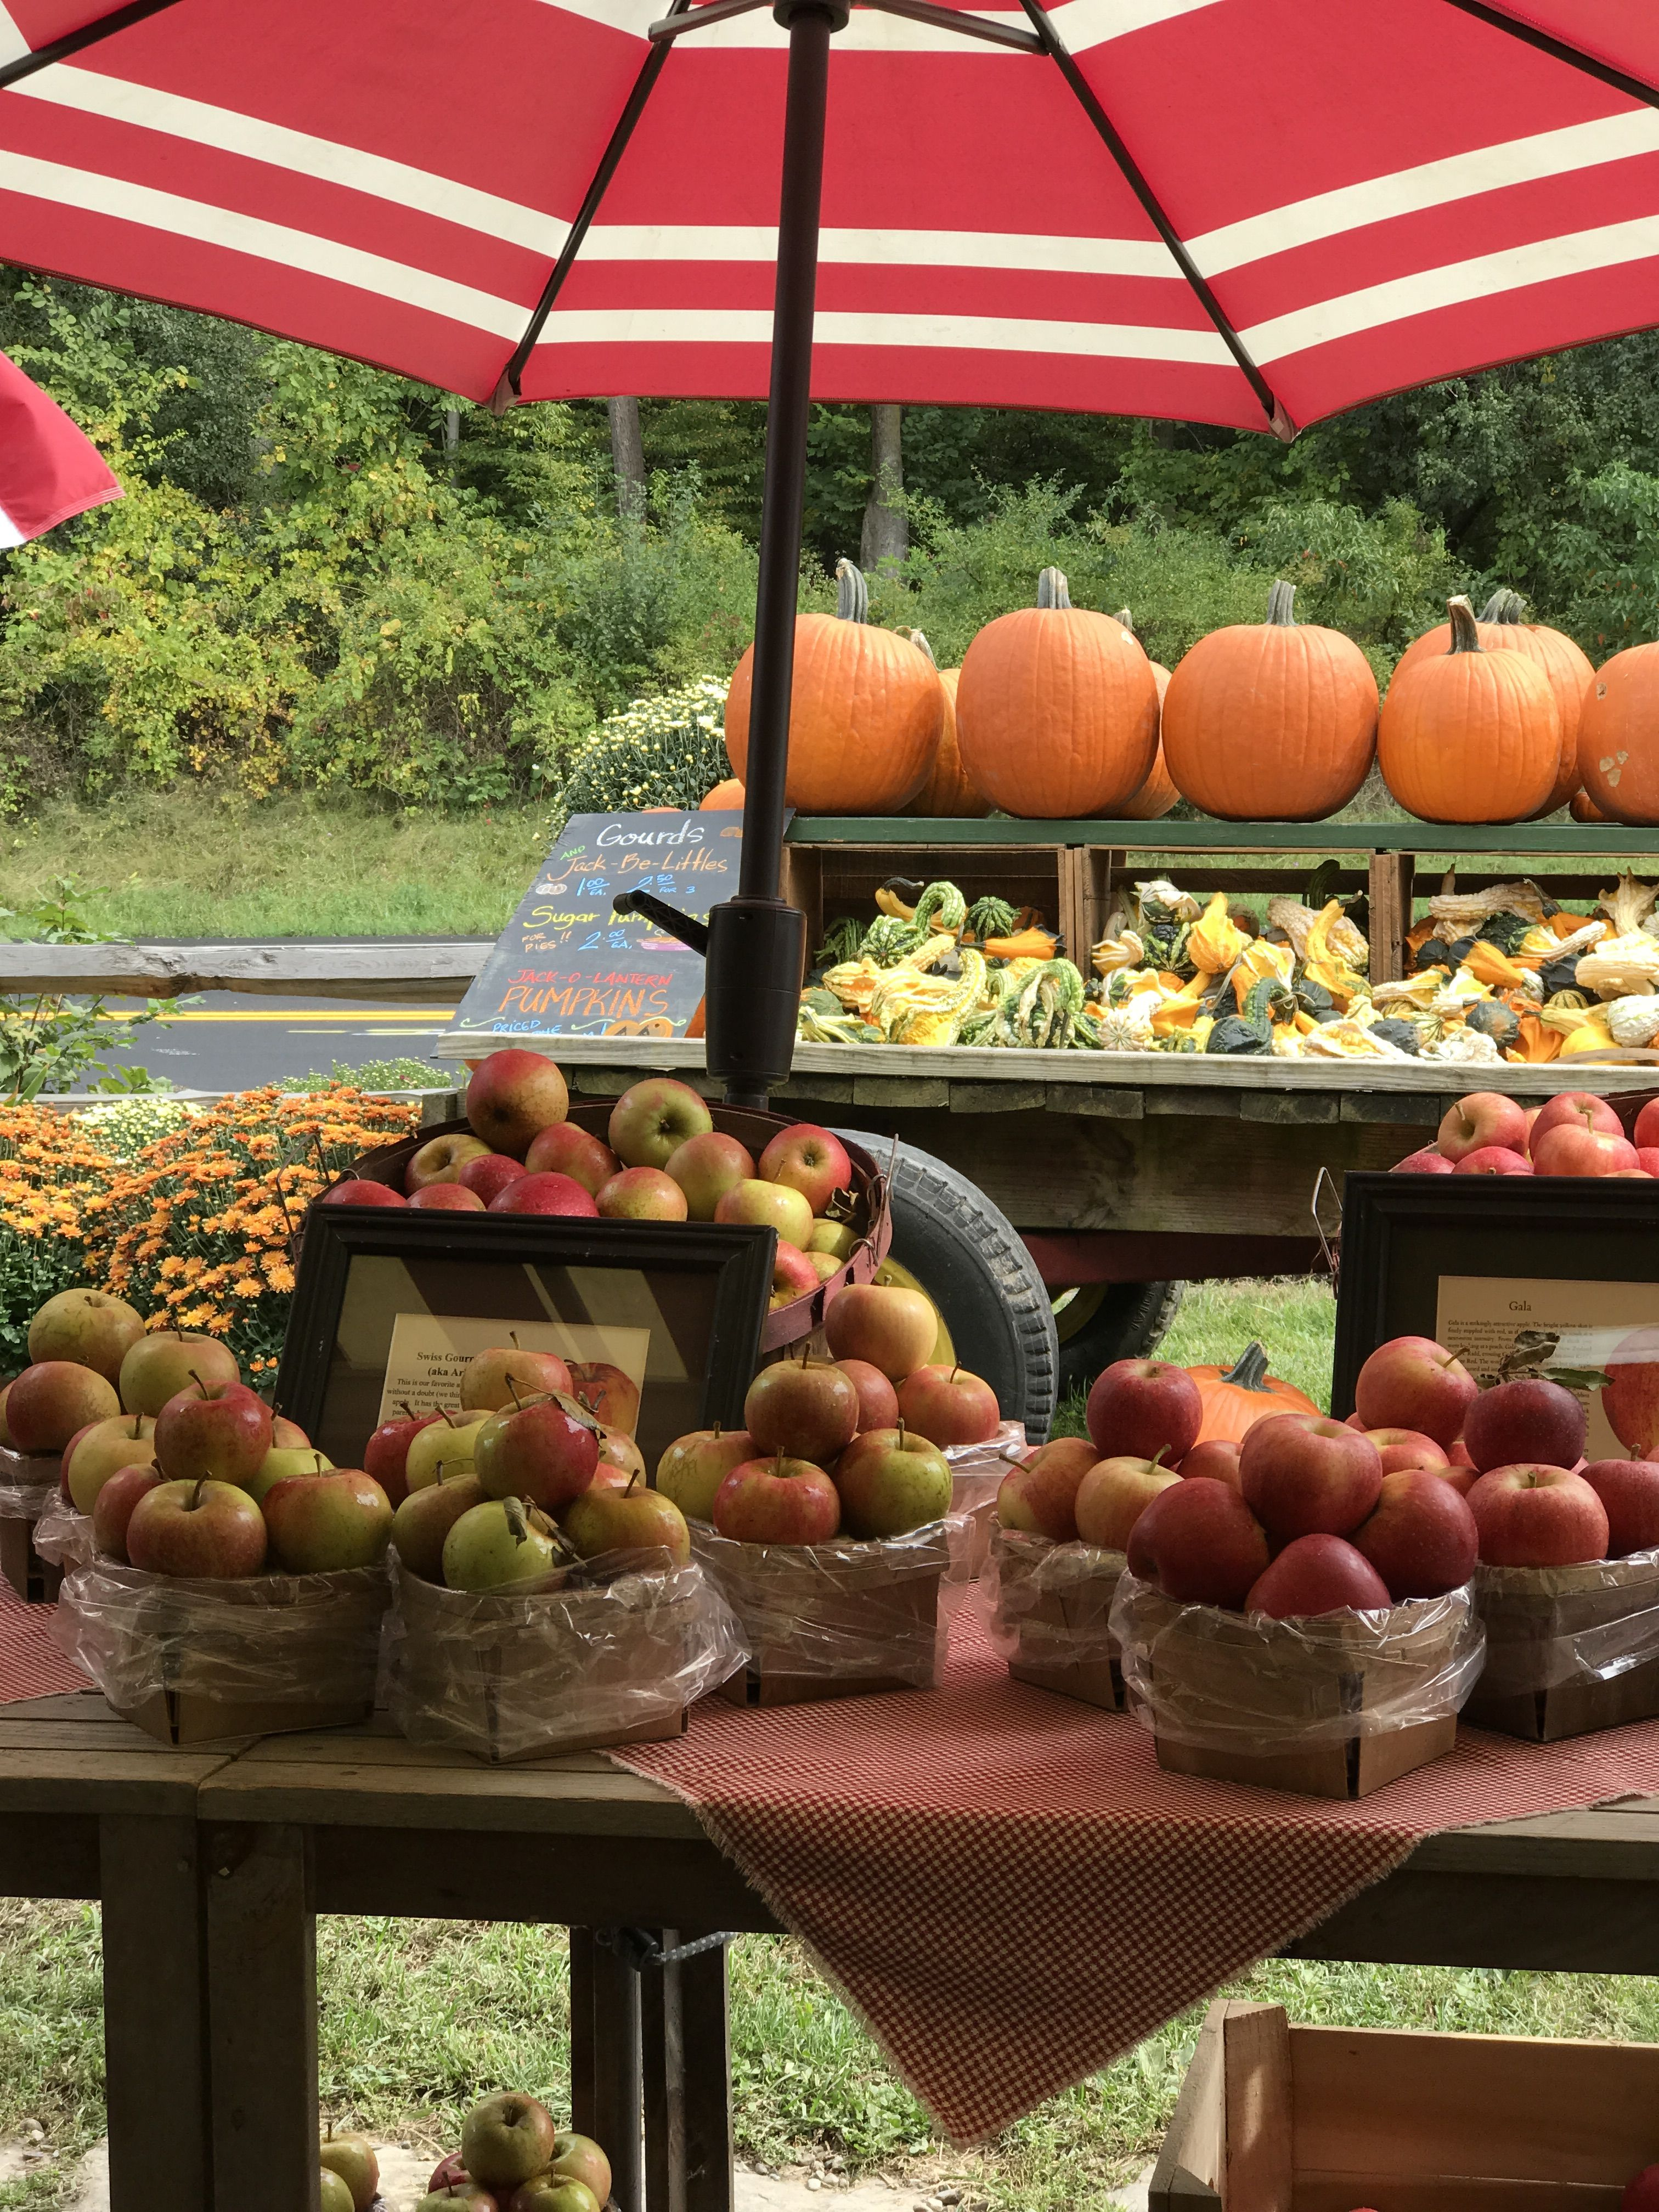 Apples!🍎 Hudson valley new york (With images) Hudson